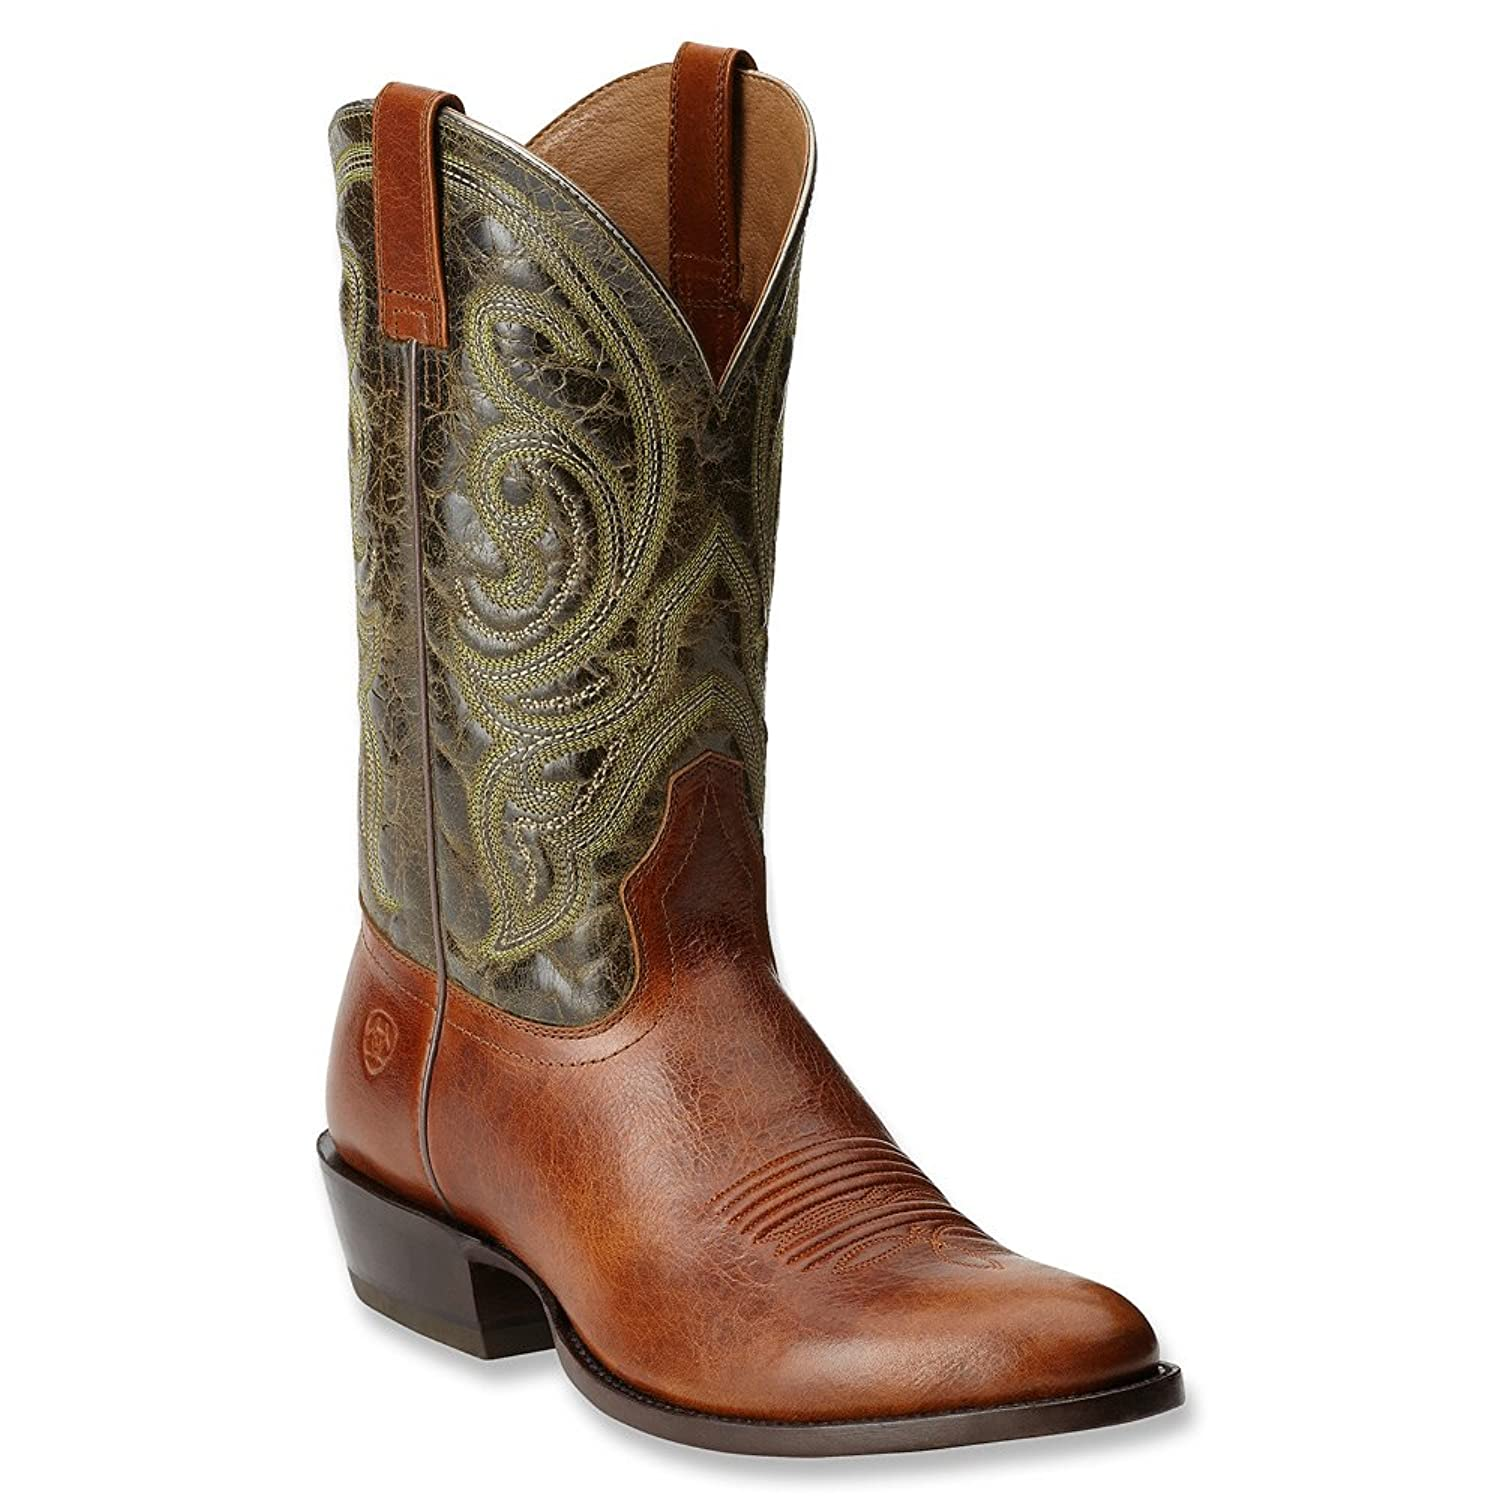 Ariat Men's Bandera Western Boot